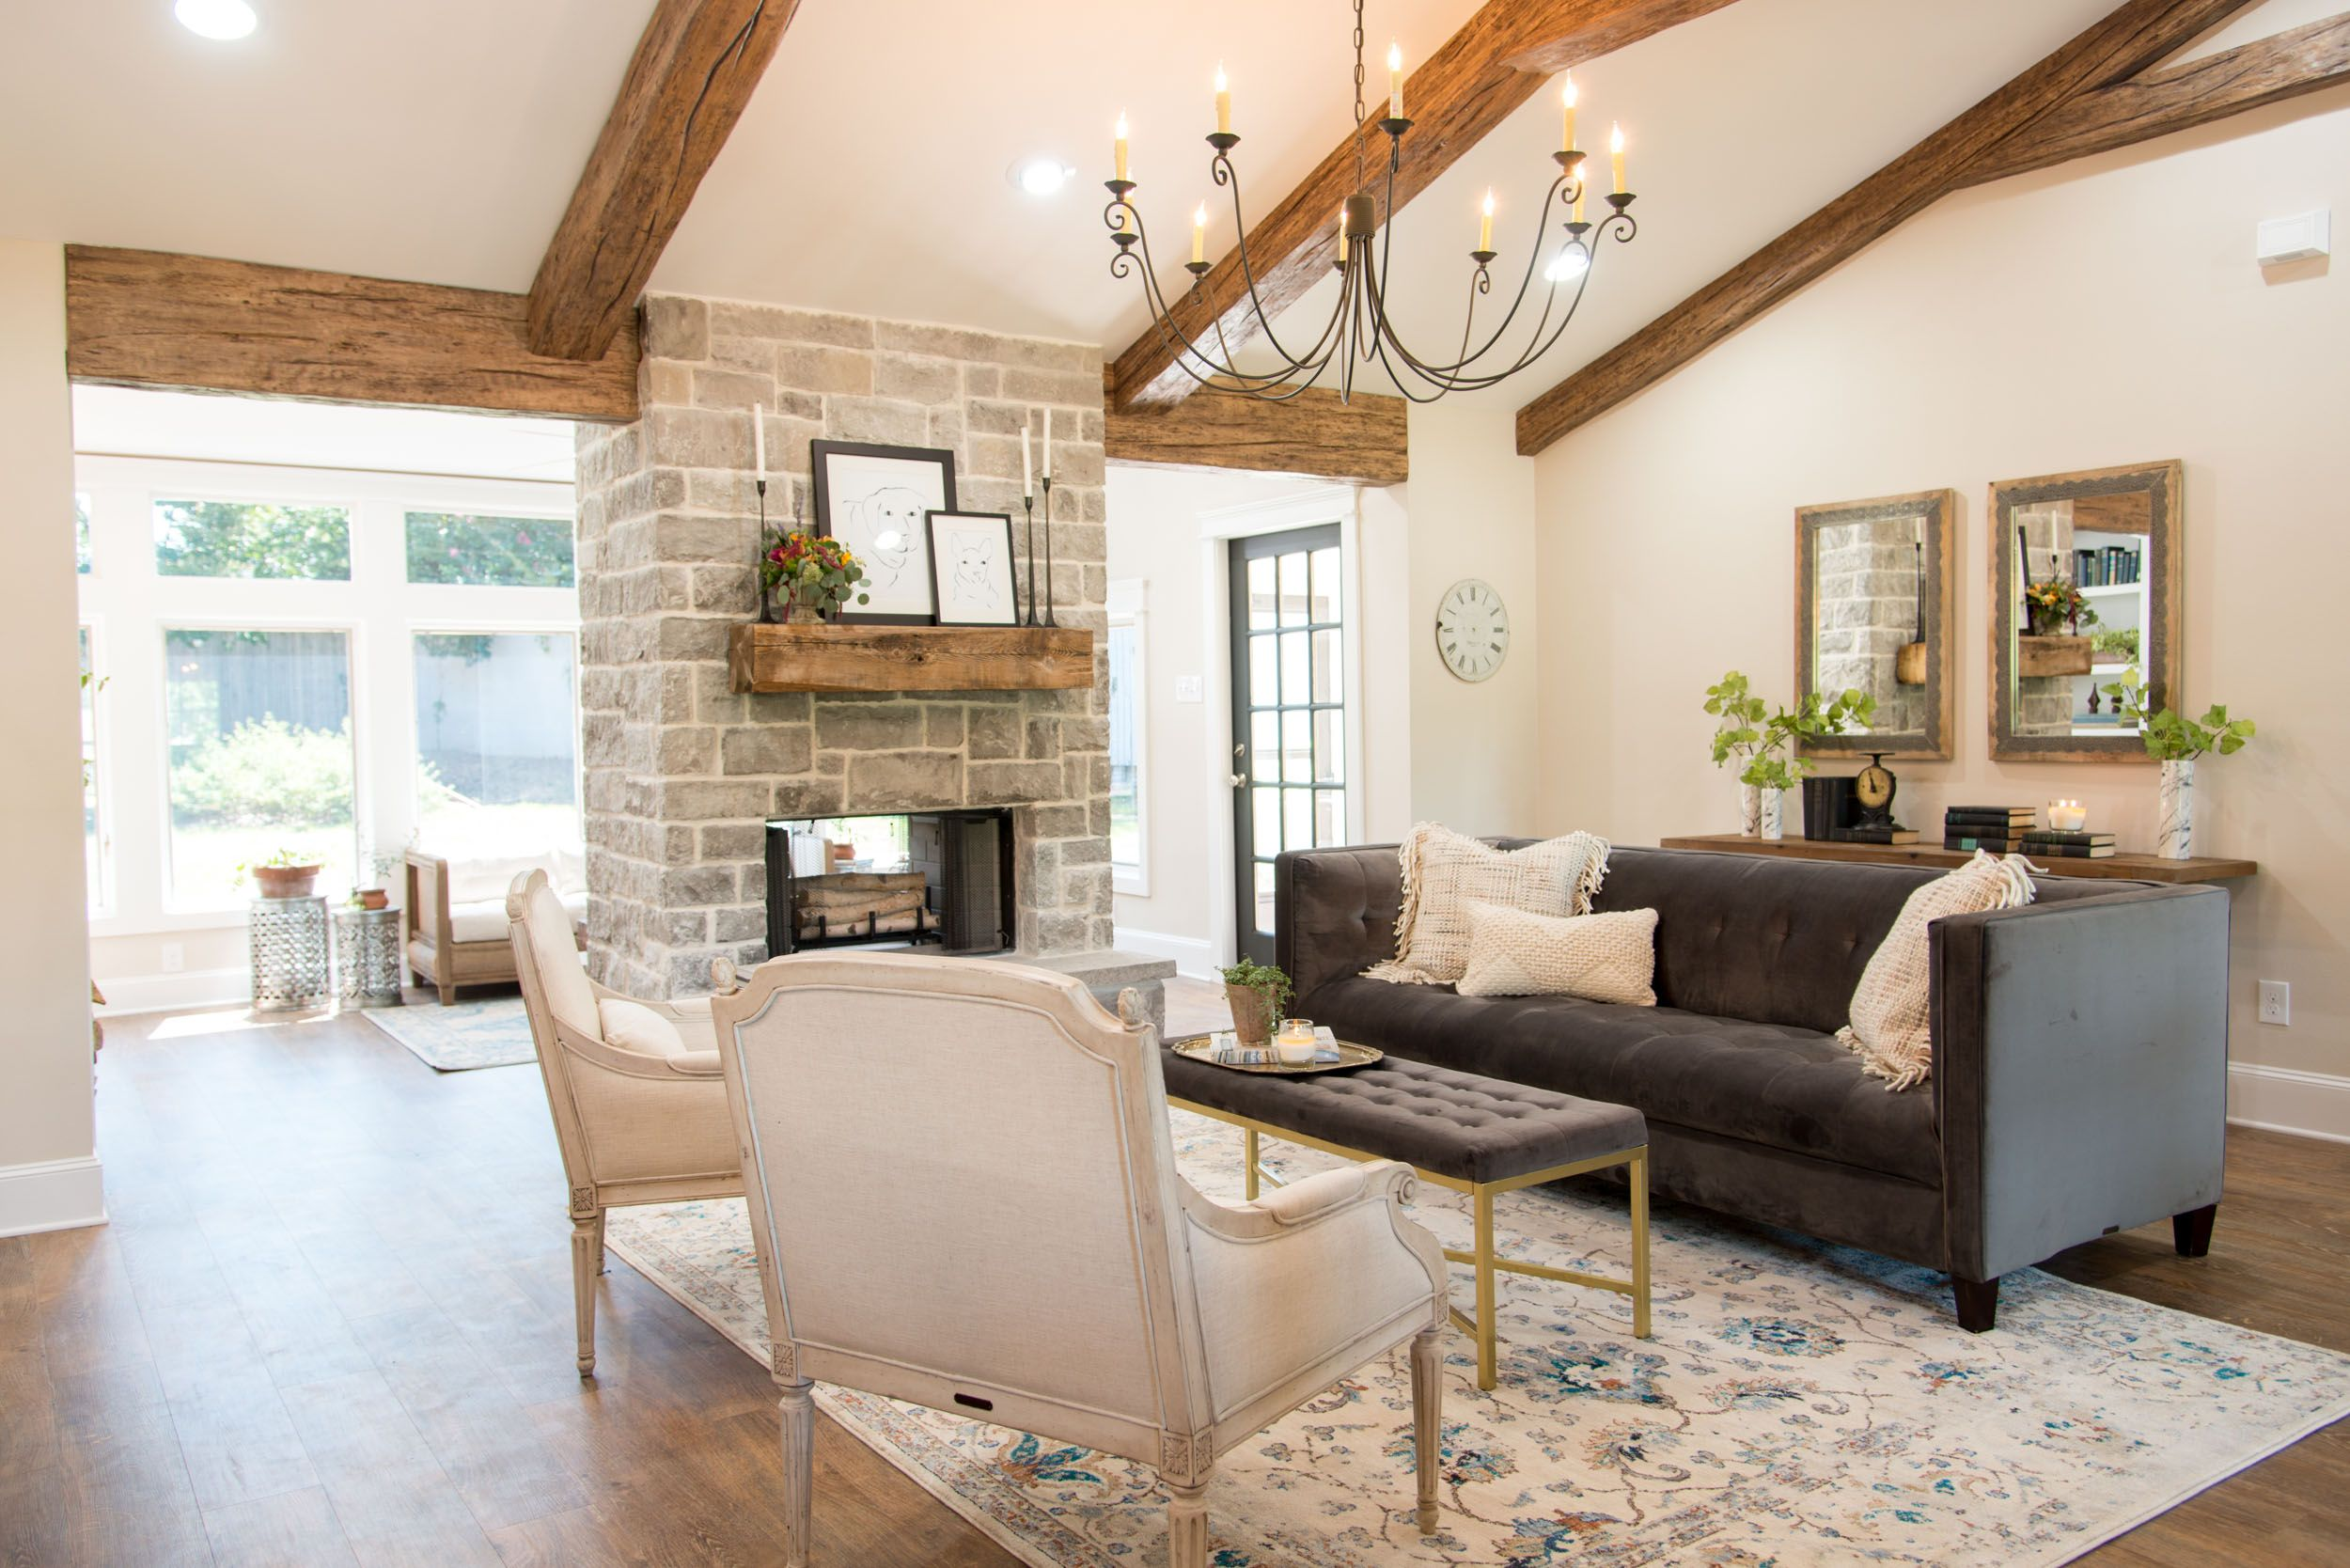 French Country Joanna Gaines Living Room Season 4 Episode 1 Interiors And Exteriors Fixer Upper